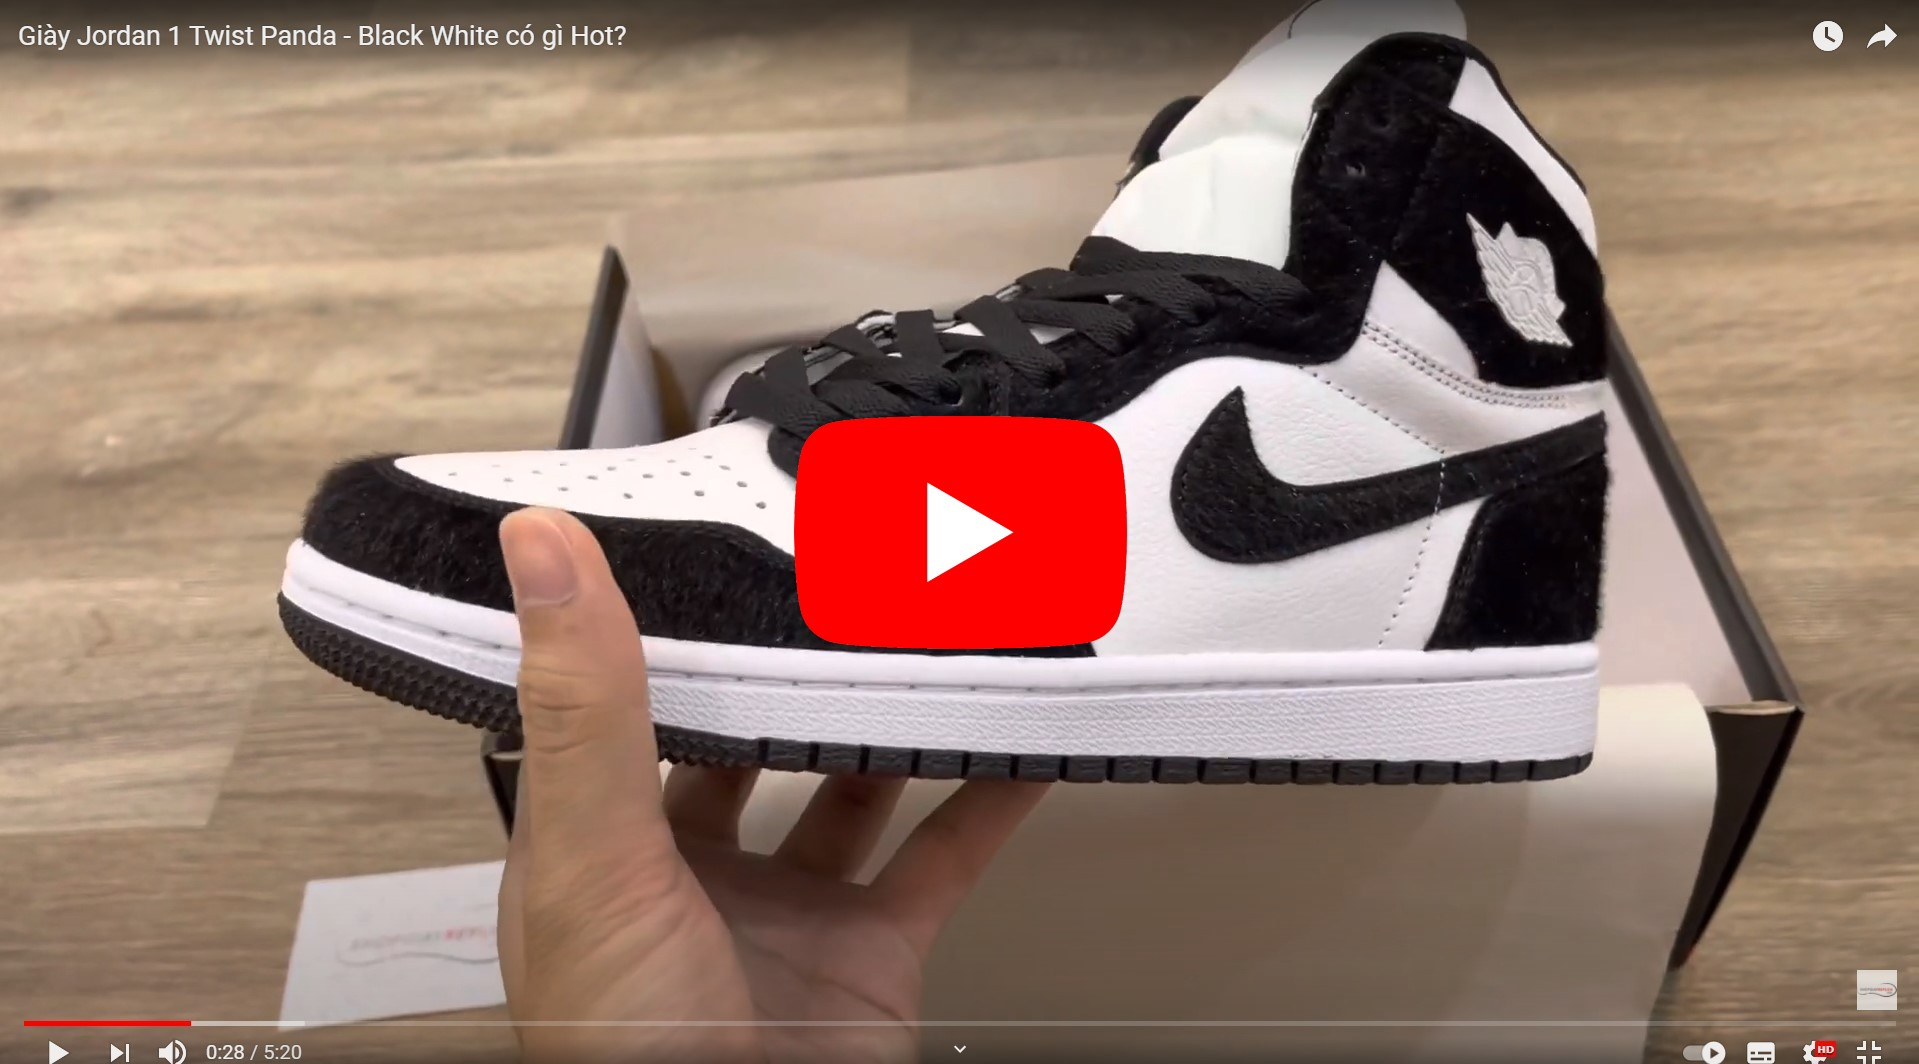 Video giày jordan 1 twist panda